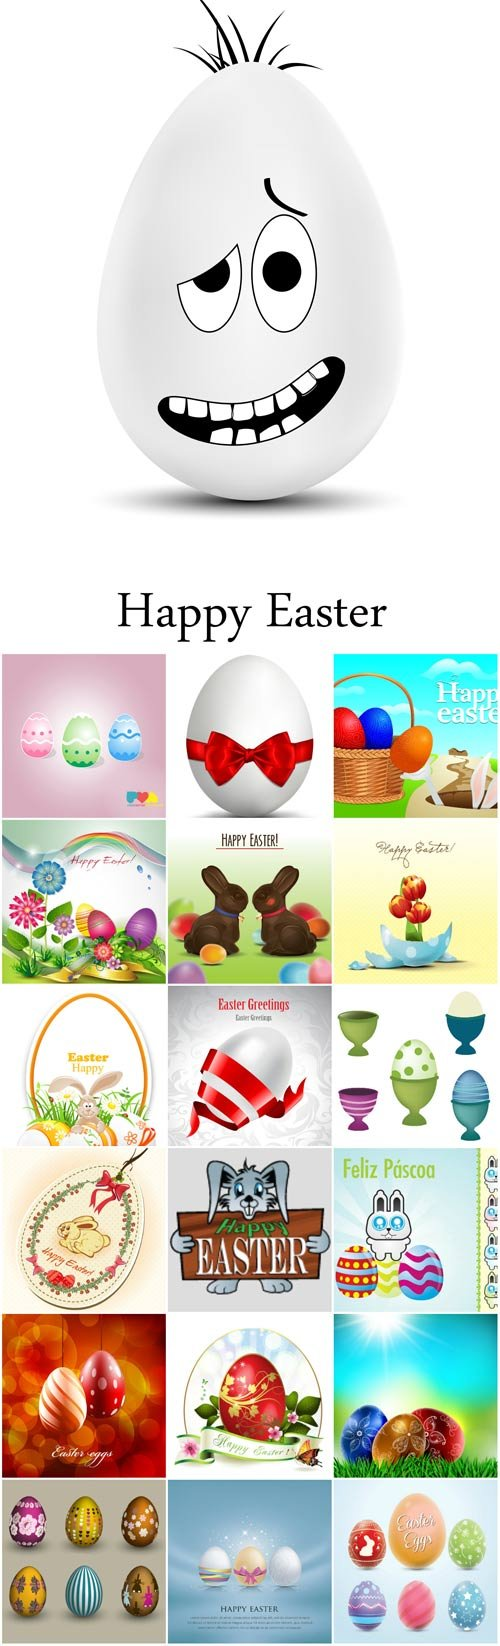 Easter backgrounds and cards vector - 2